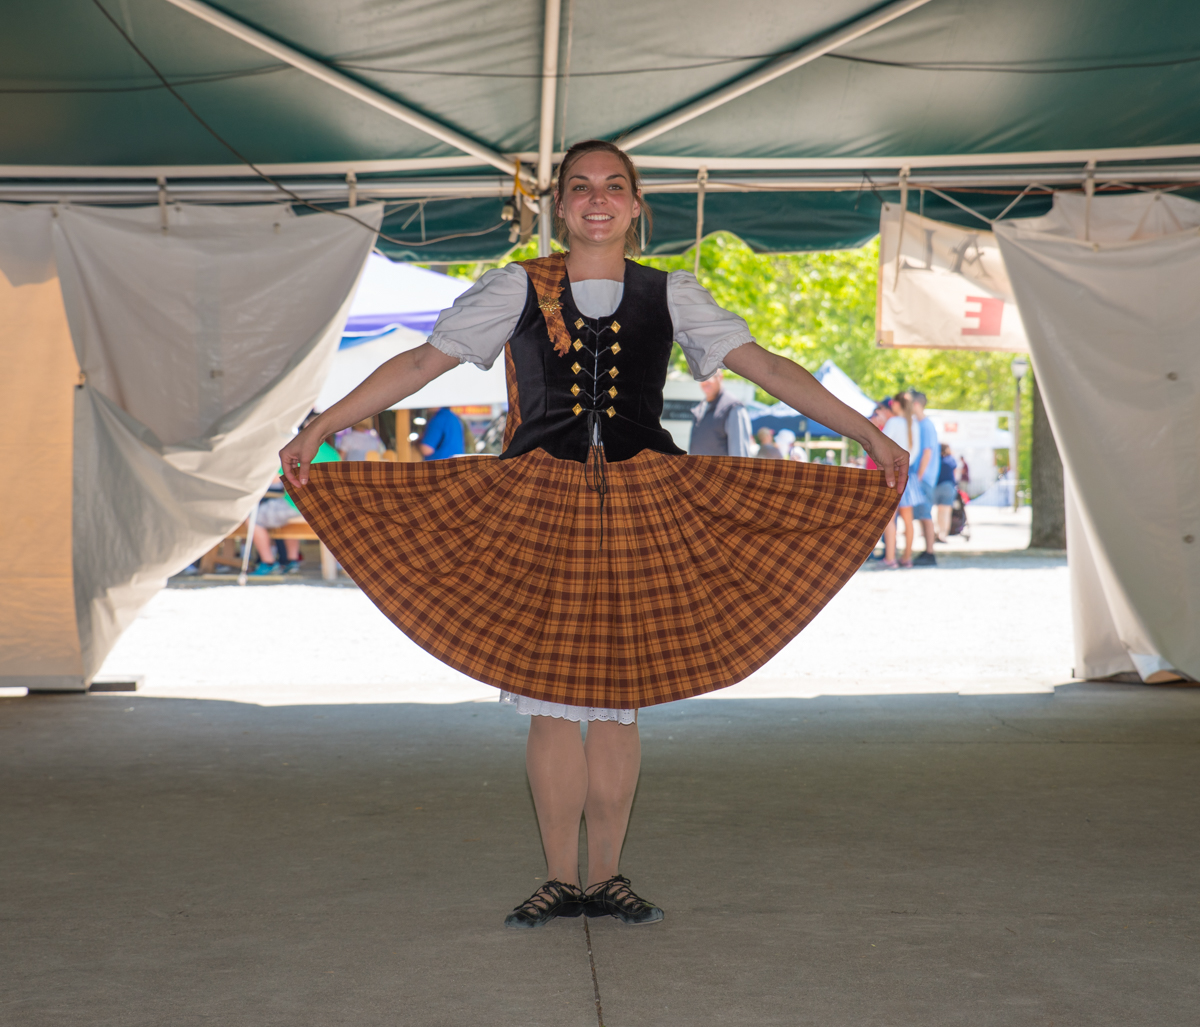 The 48th annual Appalachian Festival took place Mother's Day weekend (May 12-14, 2017) at Coney Island. / Image: Sherry Lachelle Photography // Published: 5.14.17